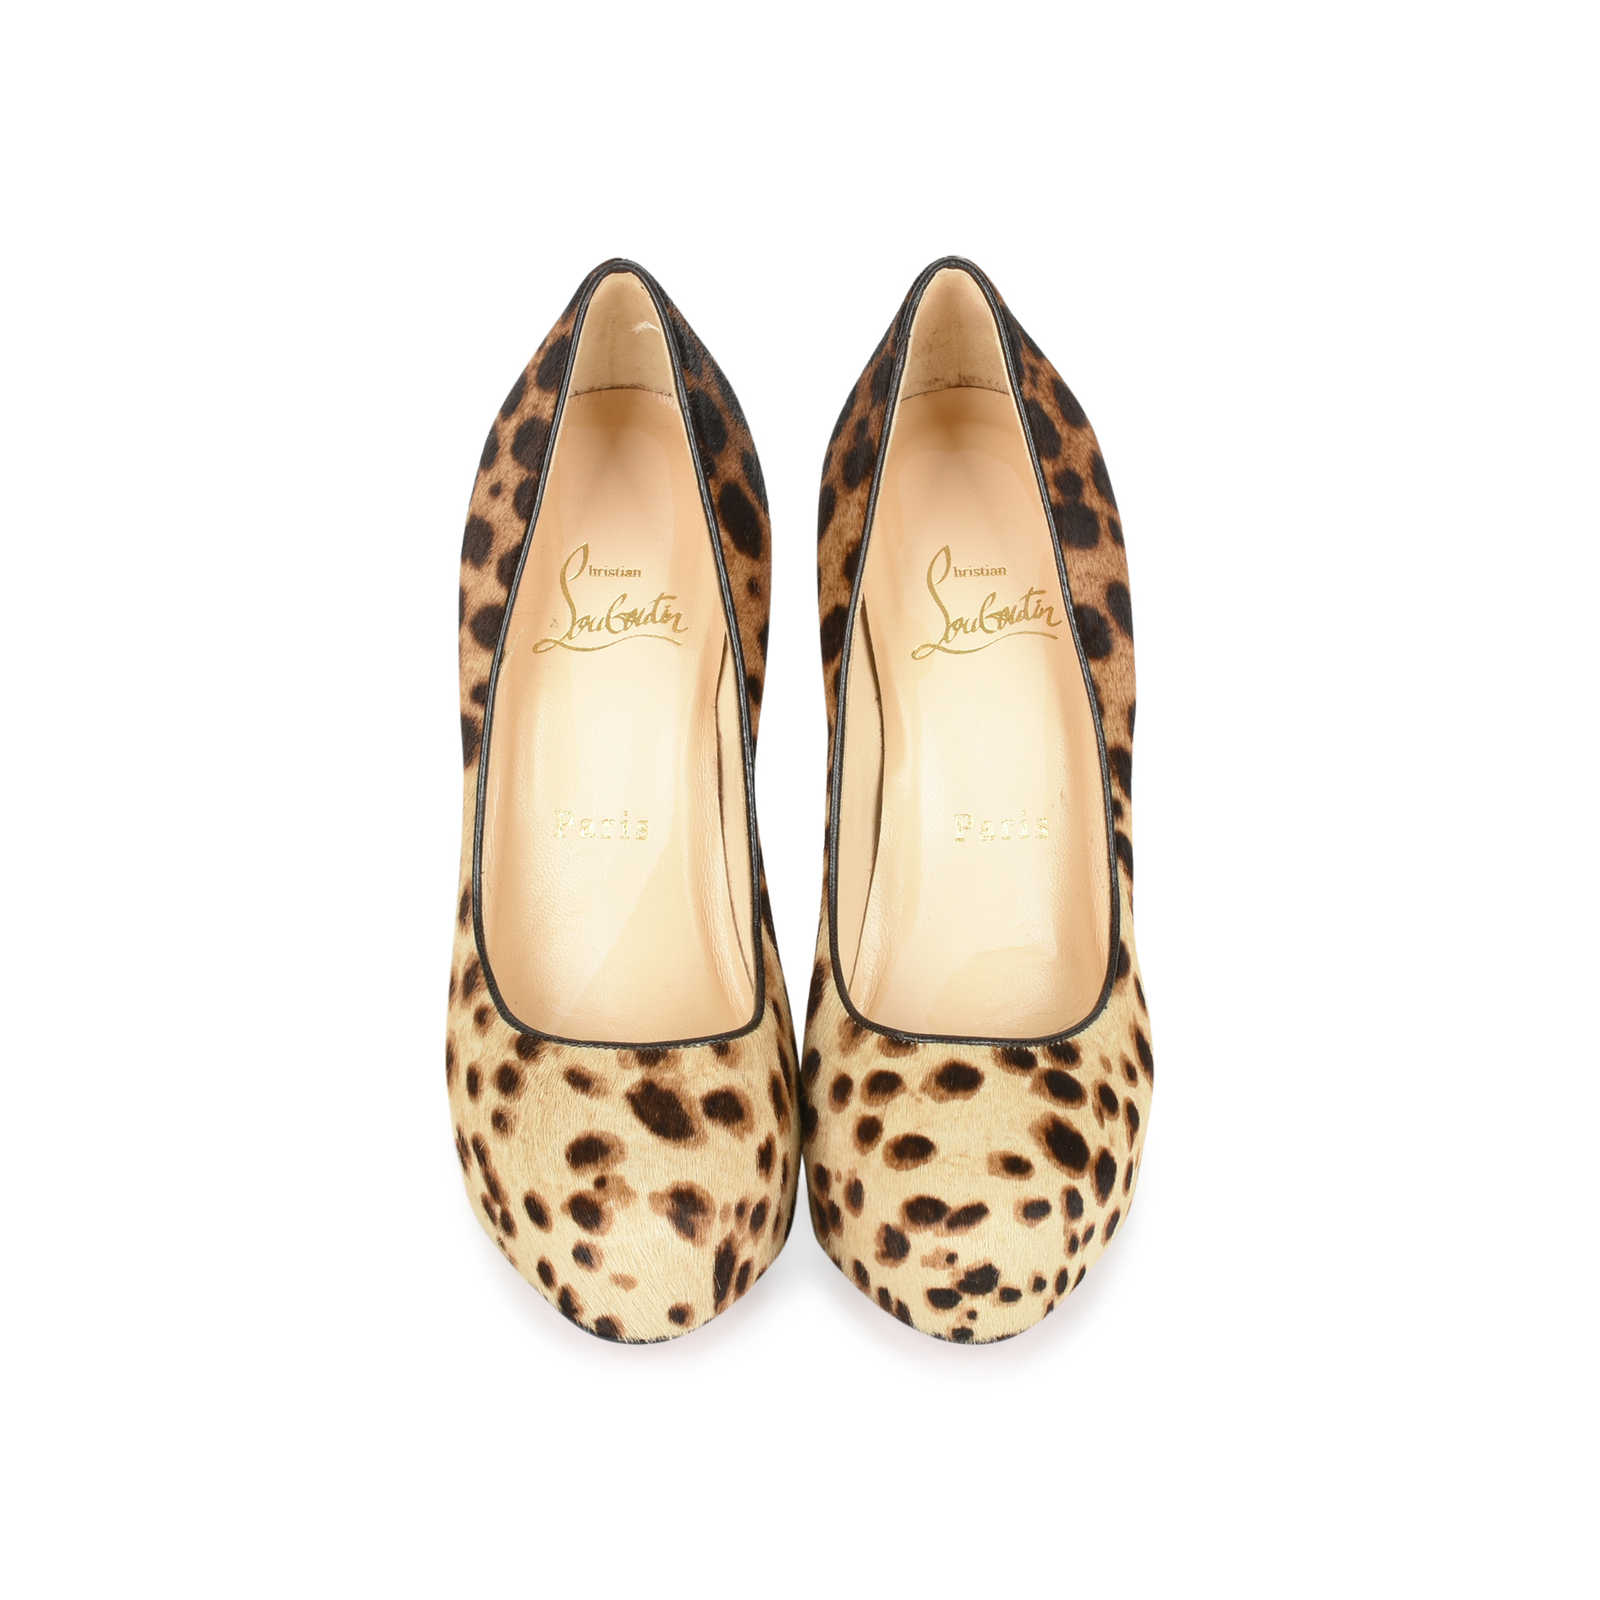 7708ac6eebc Authentic Second Hand Christian Louboutin Calf Hair Leopard Print ...